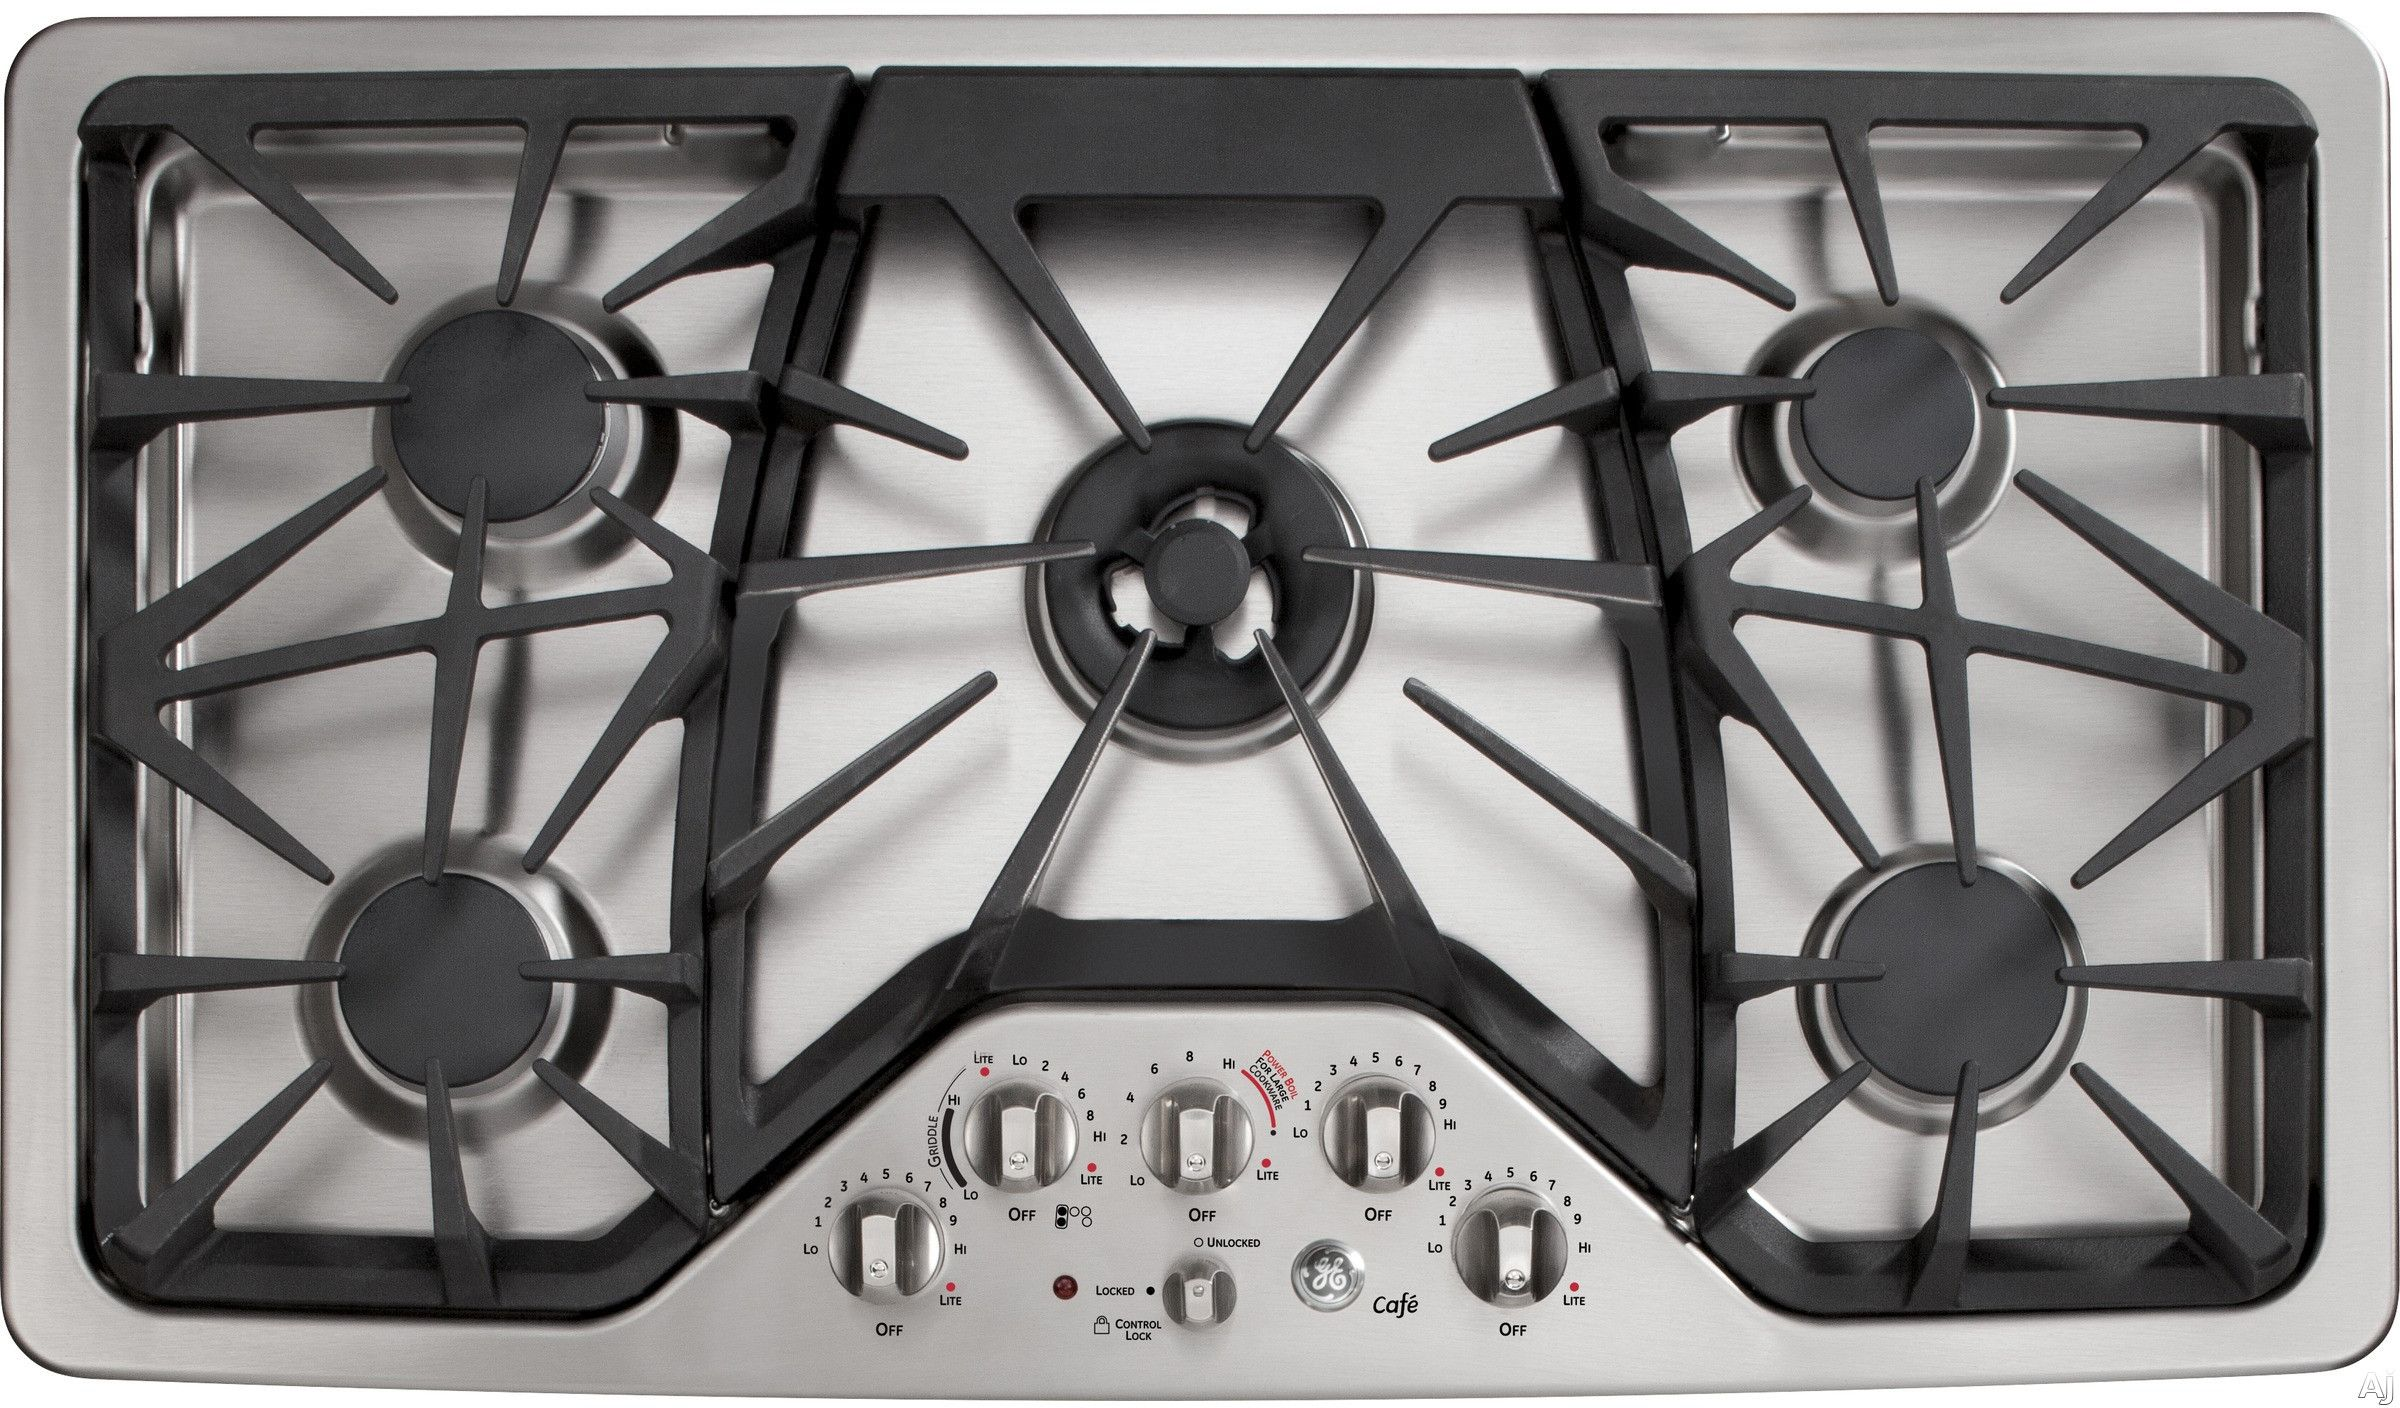 Ge Cafe Series Cgp650setss 36 Inch Gas Cooktop With Griddle Accessory Precise Simmer Burner Sealed Burners 20 000 Btu Heavy Cast Grates